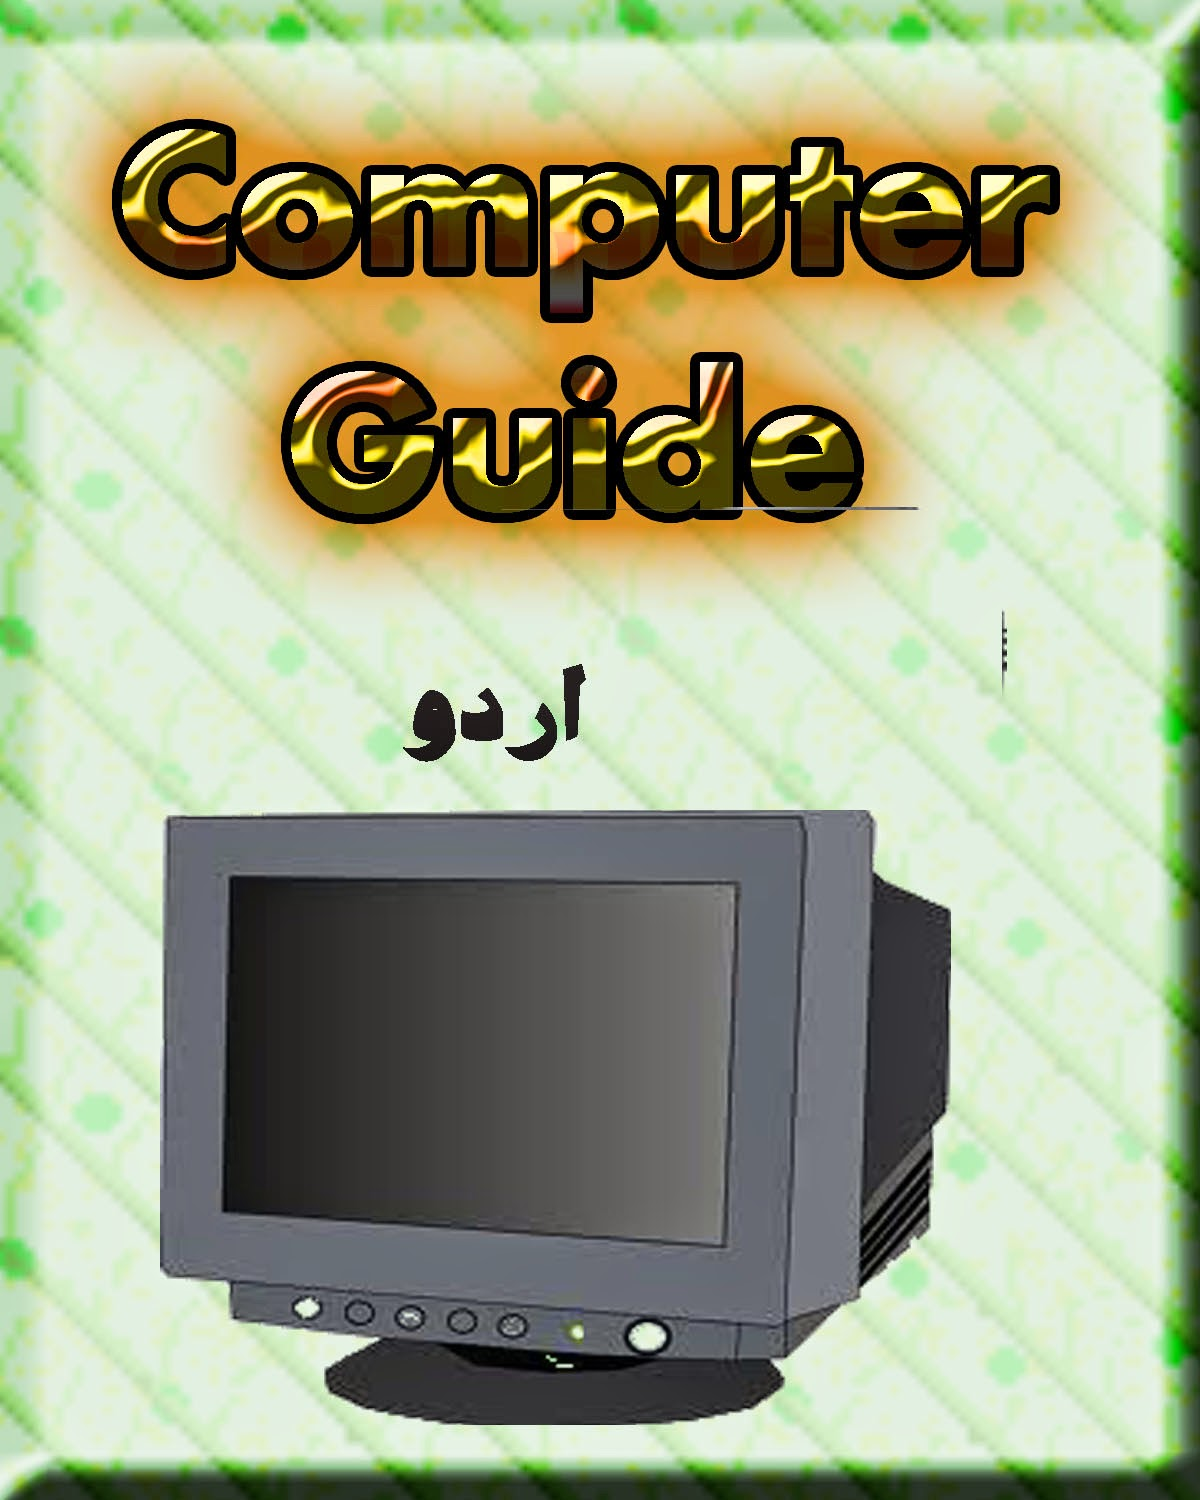 https://ia601504.us.archive.org/29/items/ComputerGuideBookUrduSigned/ComputerGuide-Book-urdu-signed.pdf